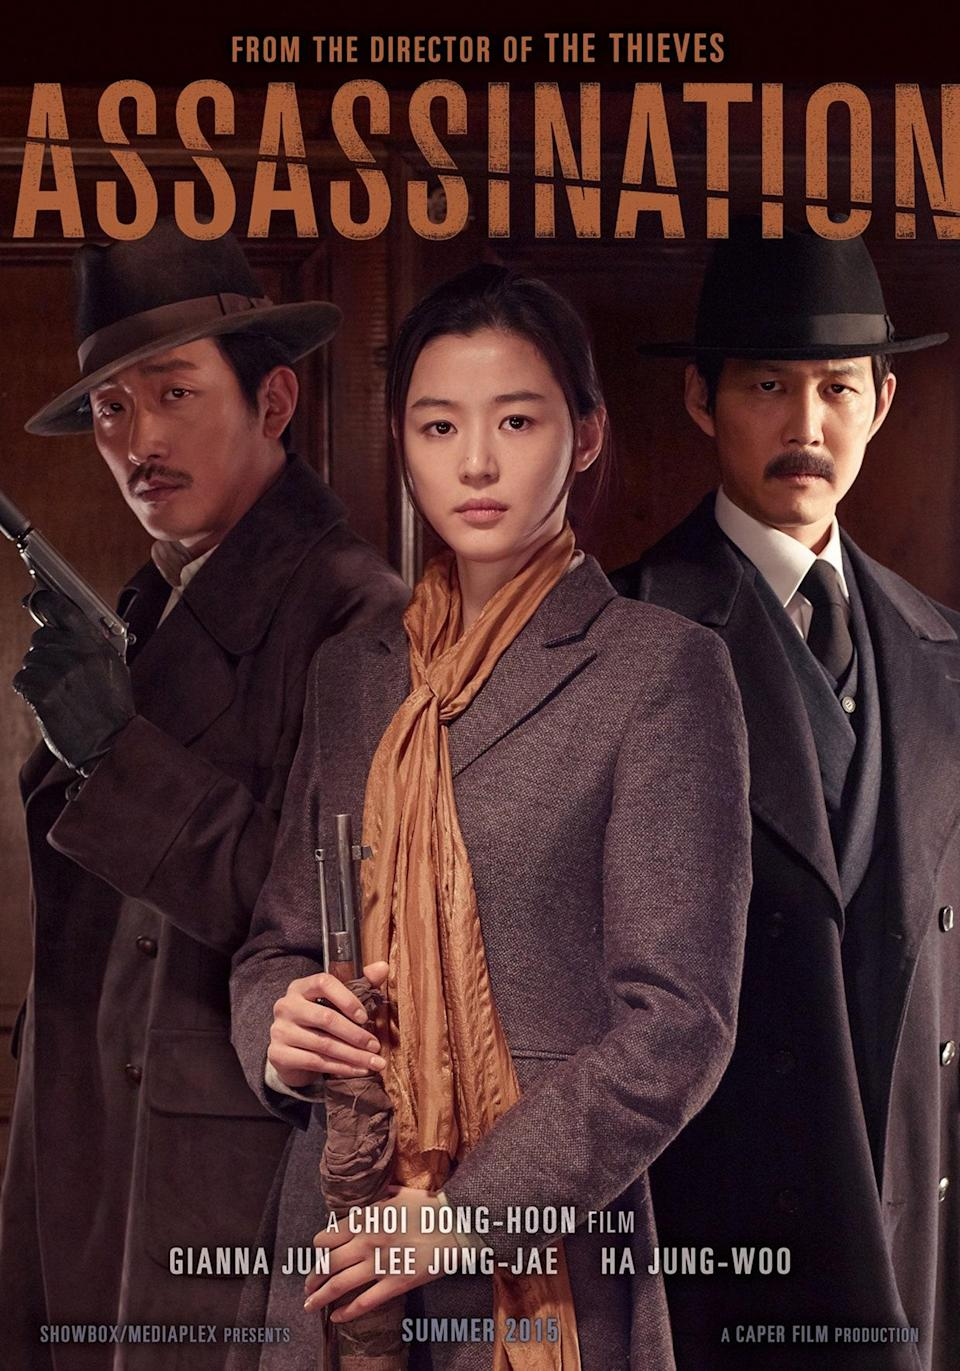 "<p>It's 1933 and Japan is currently occupying Korea when the resistance puts a plan into action to kill the Japanese commander general. But there are enemies on all sides, and nobody really knows whom to trust. Ji-Hyun Jun is the film's female lead, and after watching her in action, we're ready to dive into her entire filmography.</p> <p><a href=""https://www.amazon.com/prime-video/actor/Ji-hyun-Jun/nm0432428/ref=atv_dp_md_pp"" rel=""nofollow noopener"" target=""_blank"" data-ylk=""slk:Available to rent on Amazon Prime"" class=""link rapid-noclick-resp""><em>Available to rent on Amazon Prime</em></a></p>"